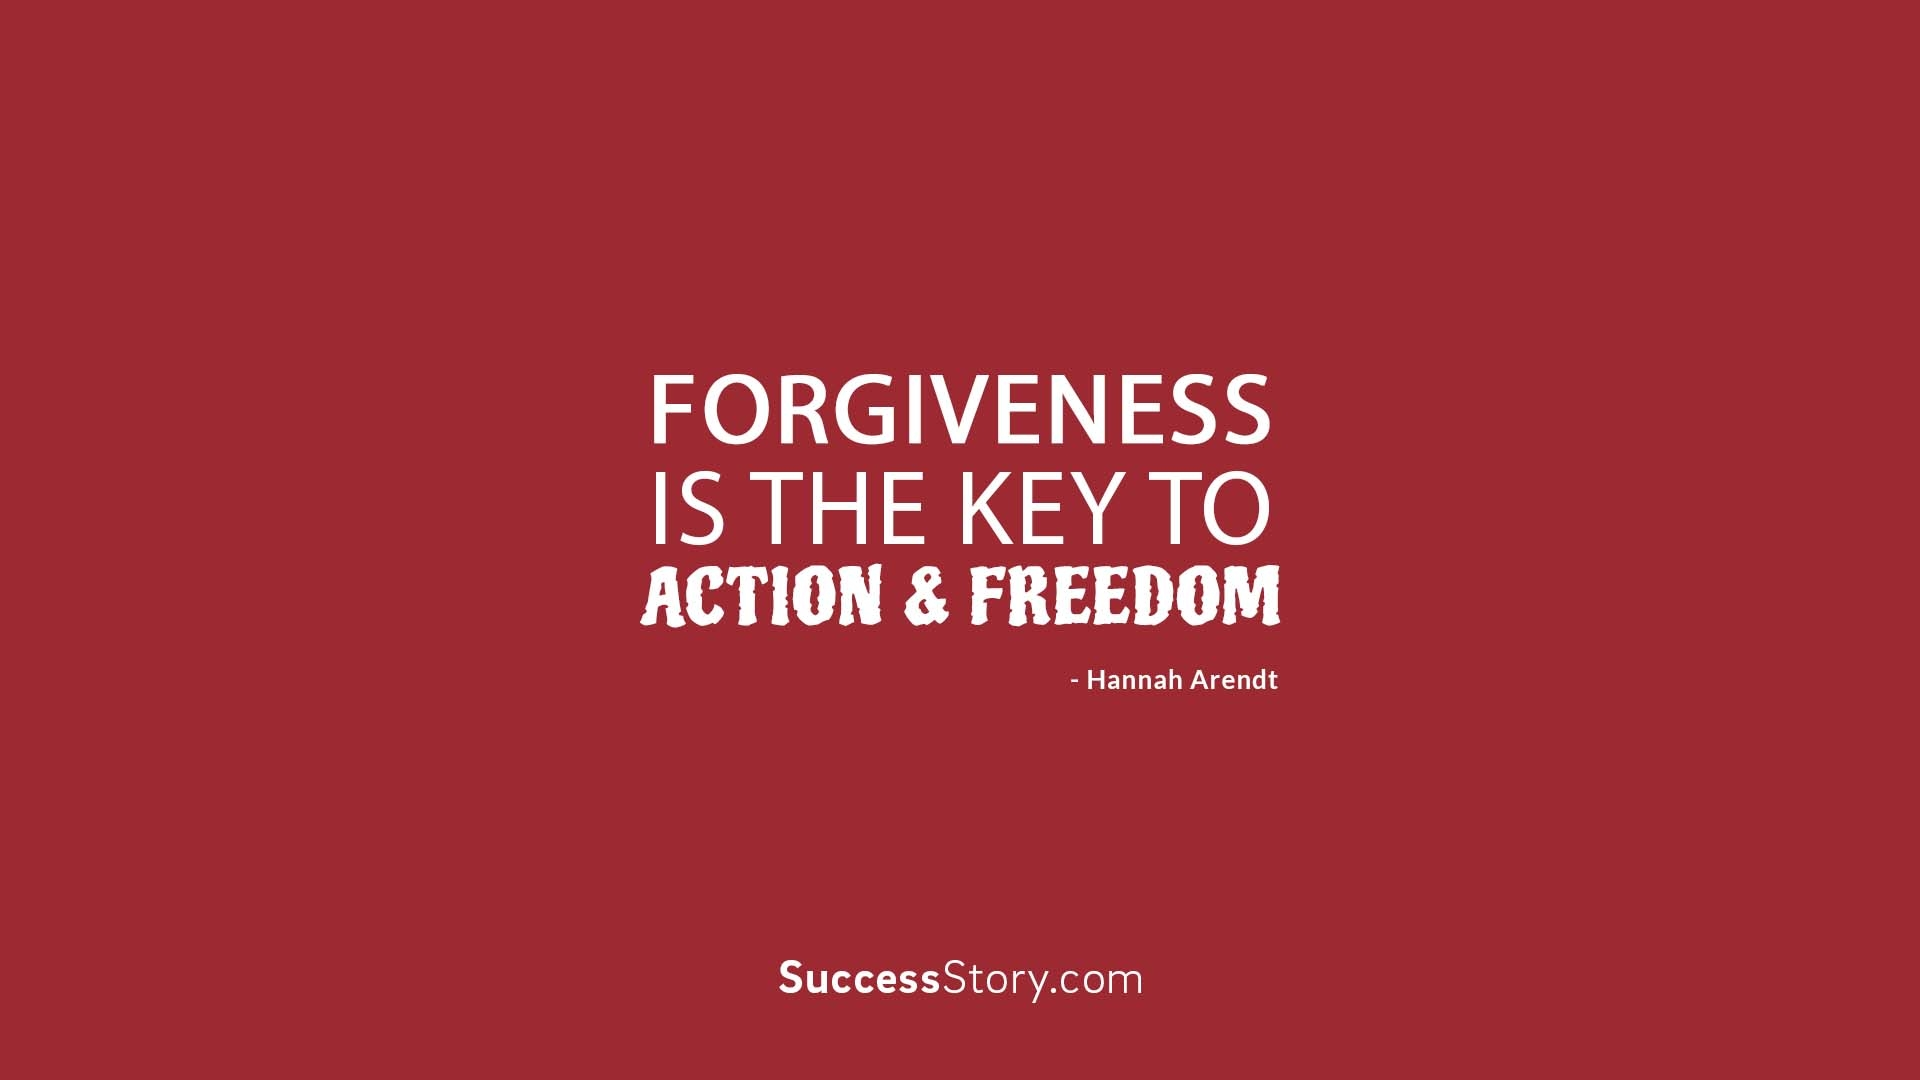 Forgiveness is the key to action